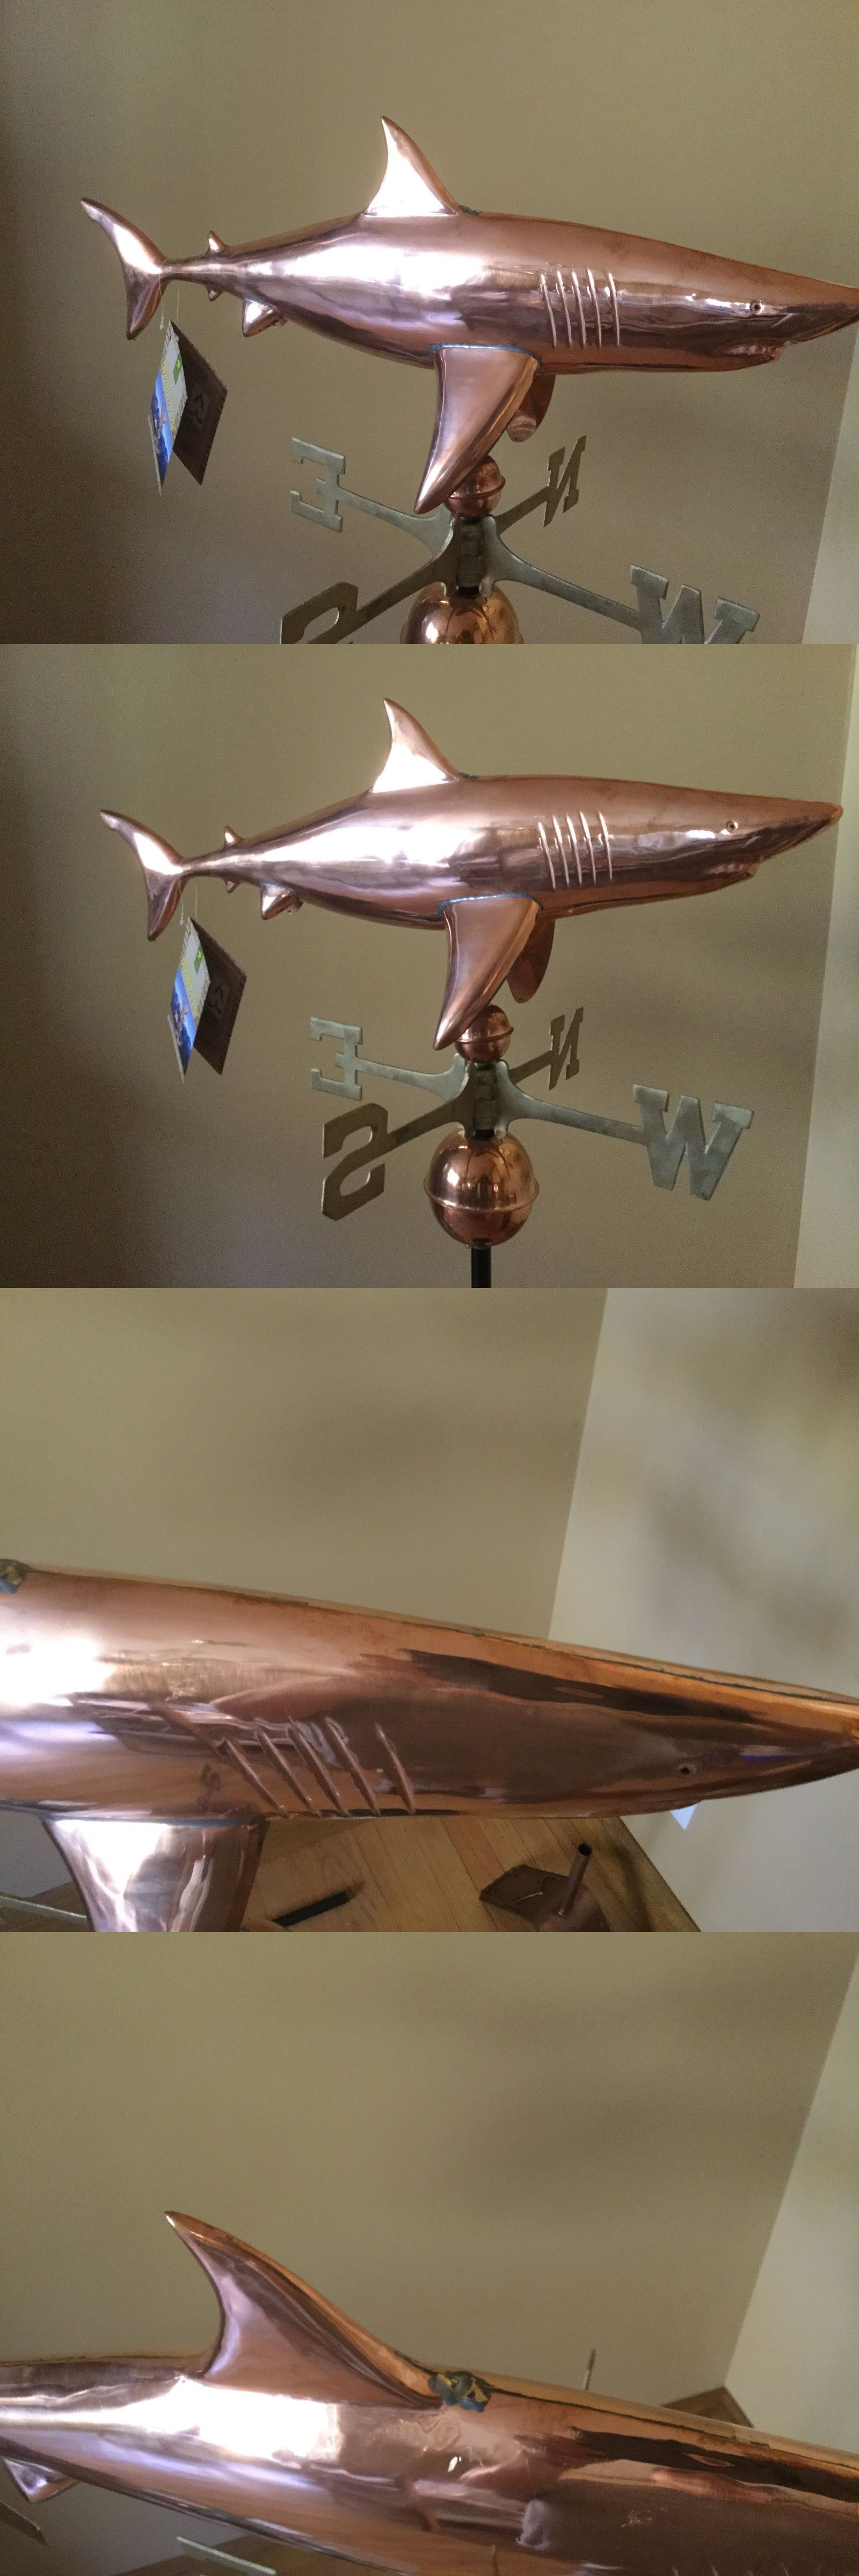 Weathervanes 20512 Good Directions Polished Copper Shark Weathervane With Roof Mount Buy It Now Only 175 On Ebay We Good Directions Weathervanes Copper